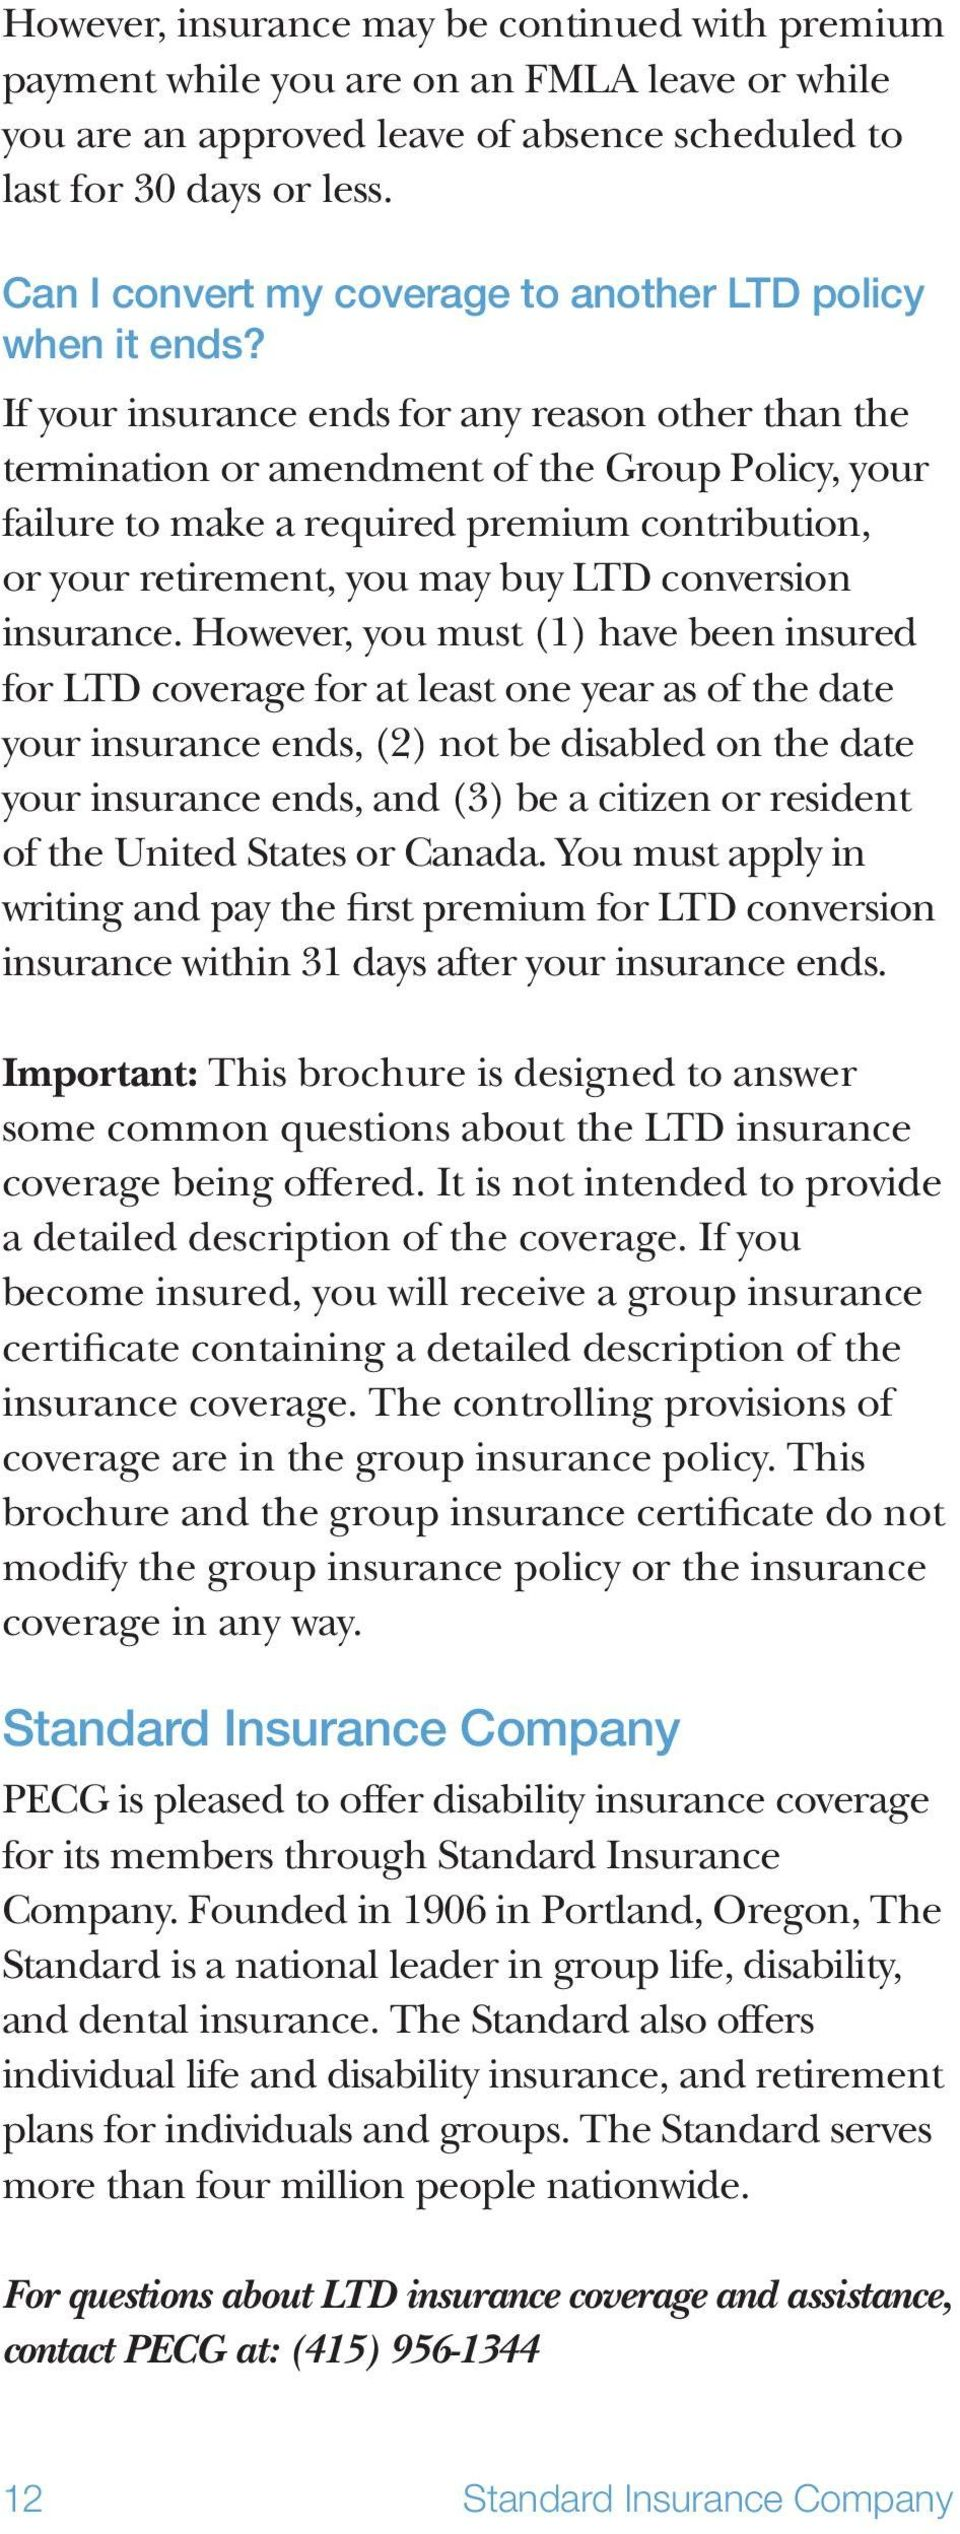 If your insurance ends for any reason other than the termination or amendment of the Group Policy, your failure to make a required premium contribution, or your retirement, you may buy LTD conversion